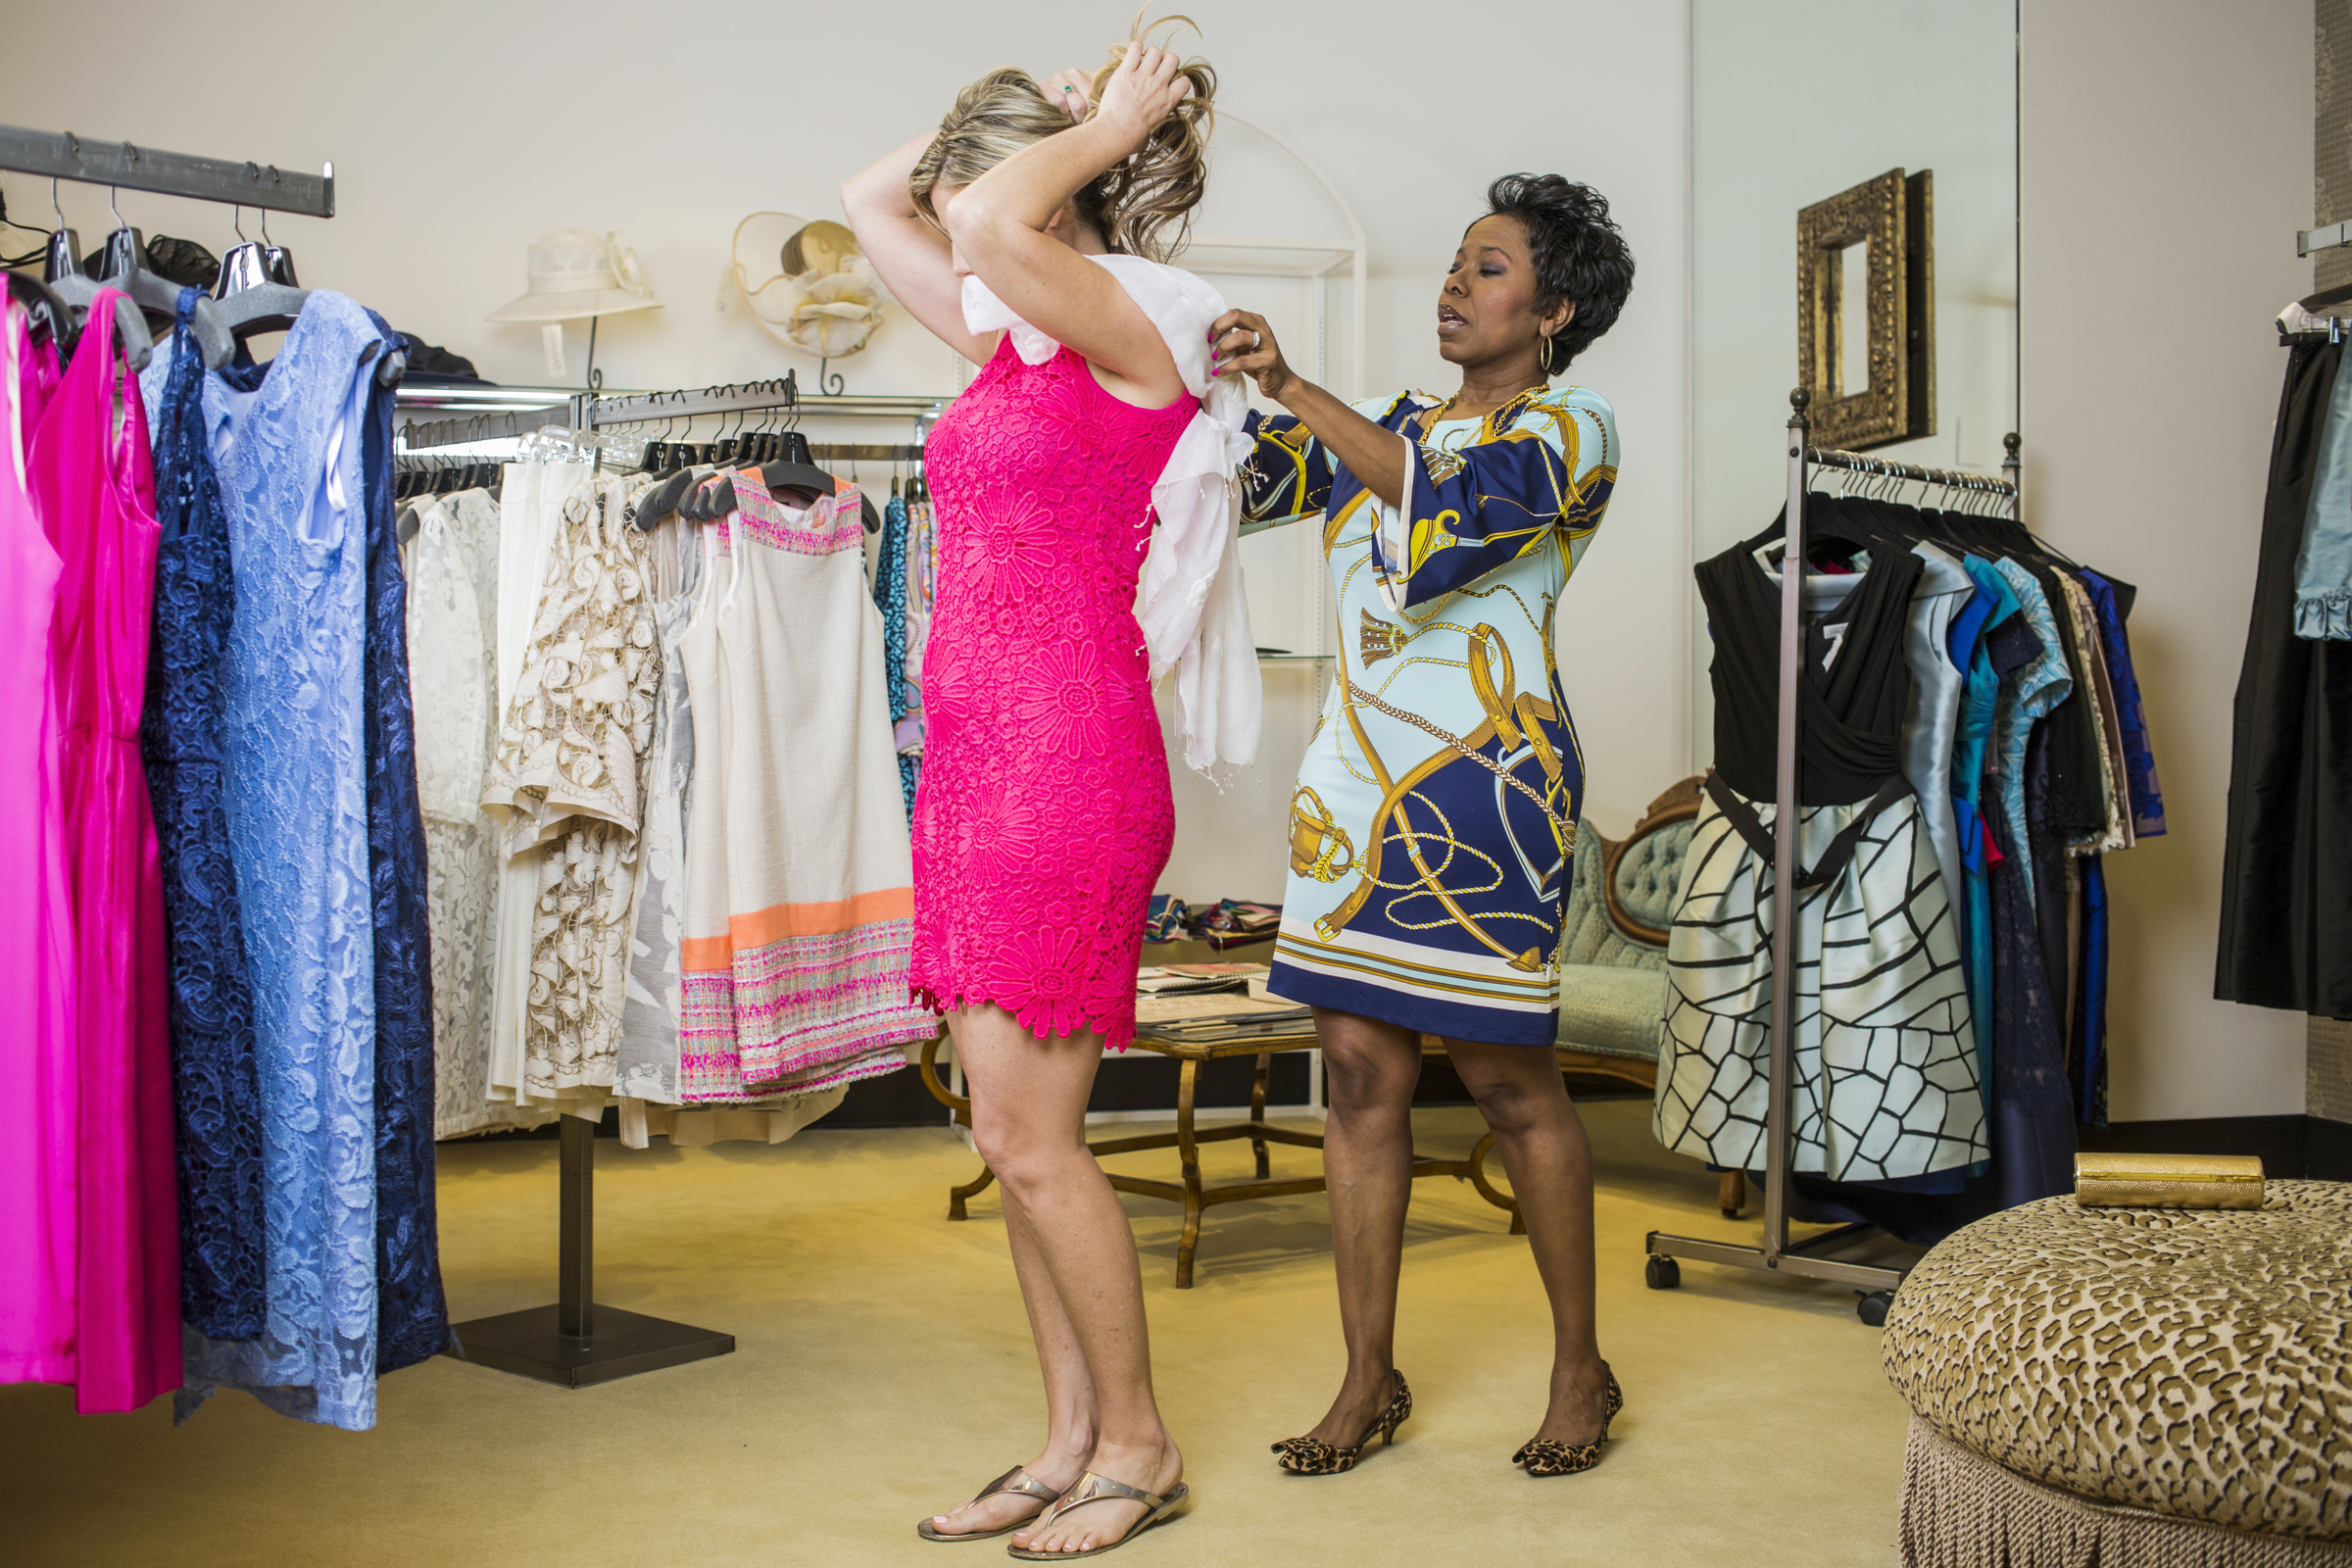 Life+Style Coach Anna Walker helps her client, Shauna Bryan, prepare for an event.